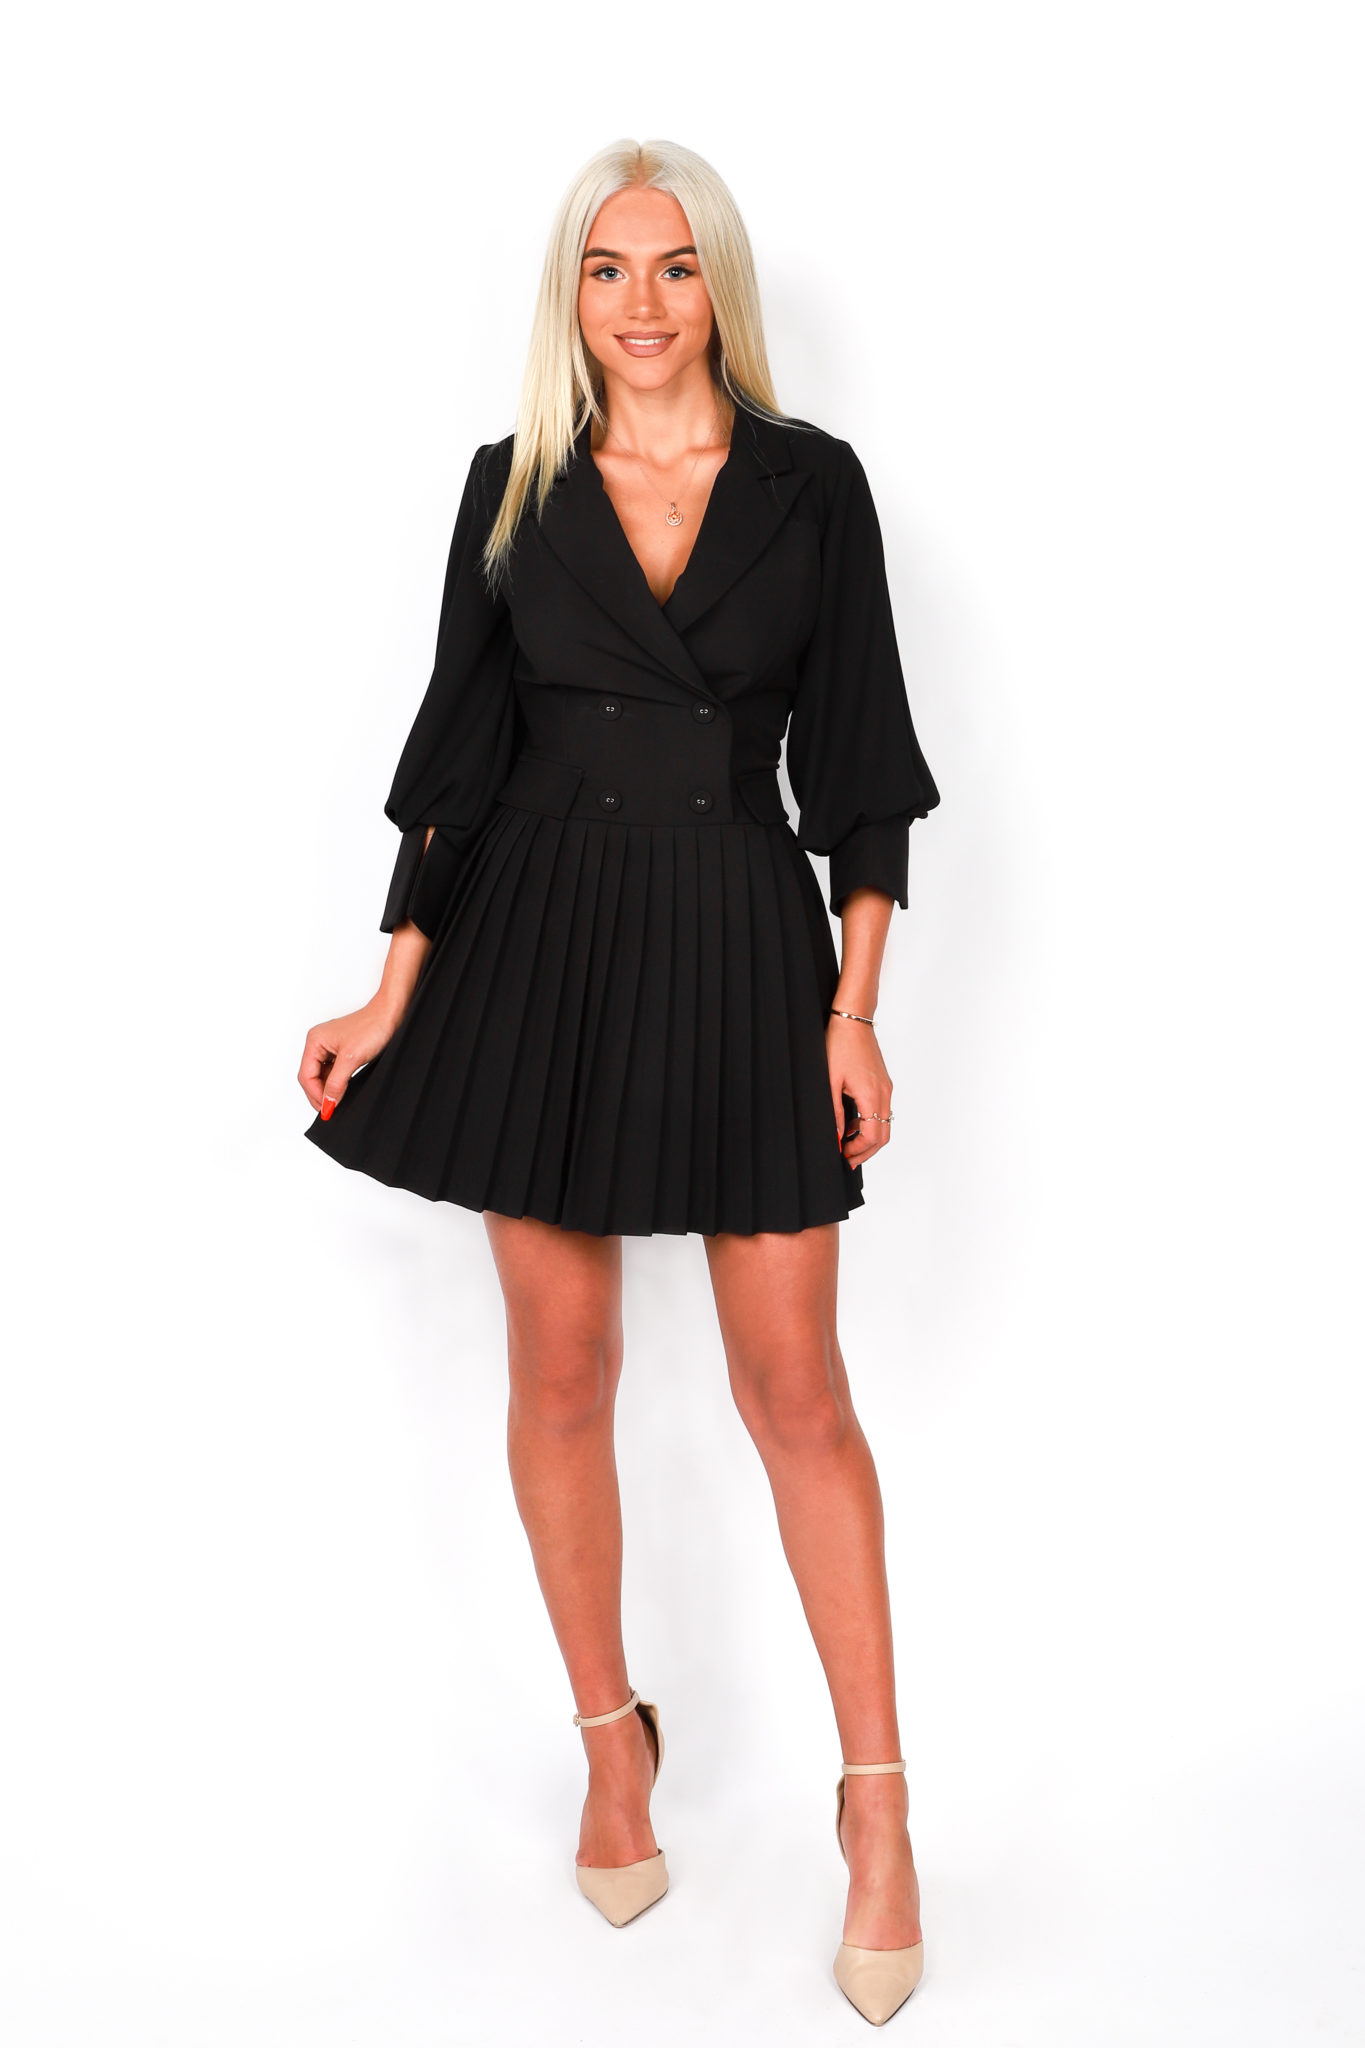 746c6fda4c02 Blazer Dress – saint.ee